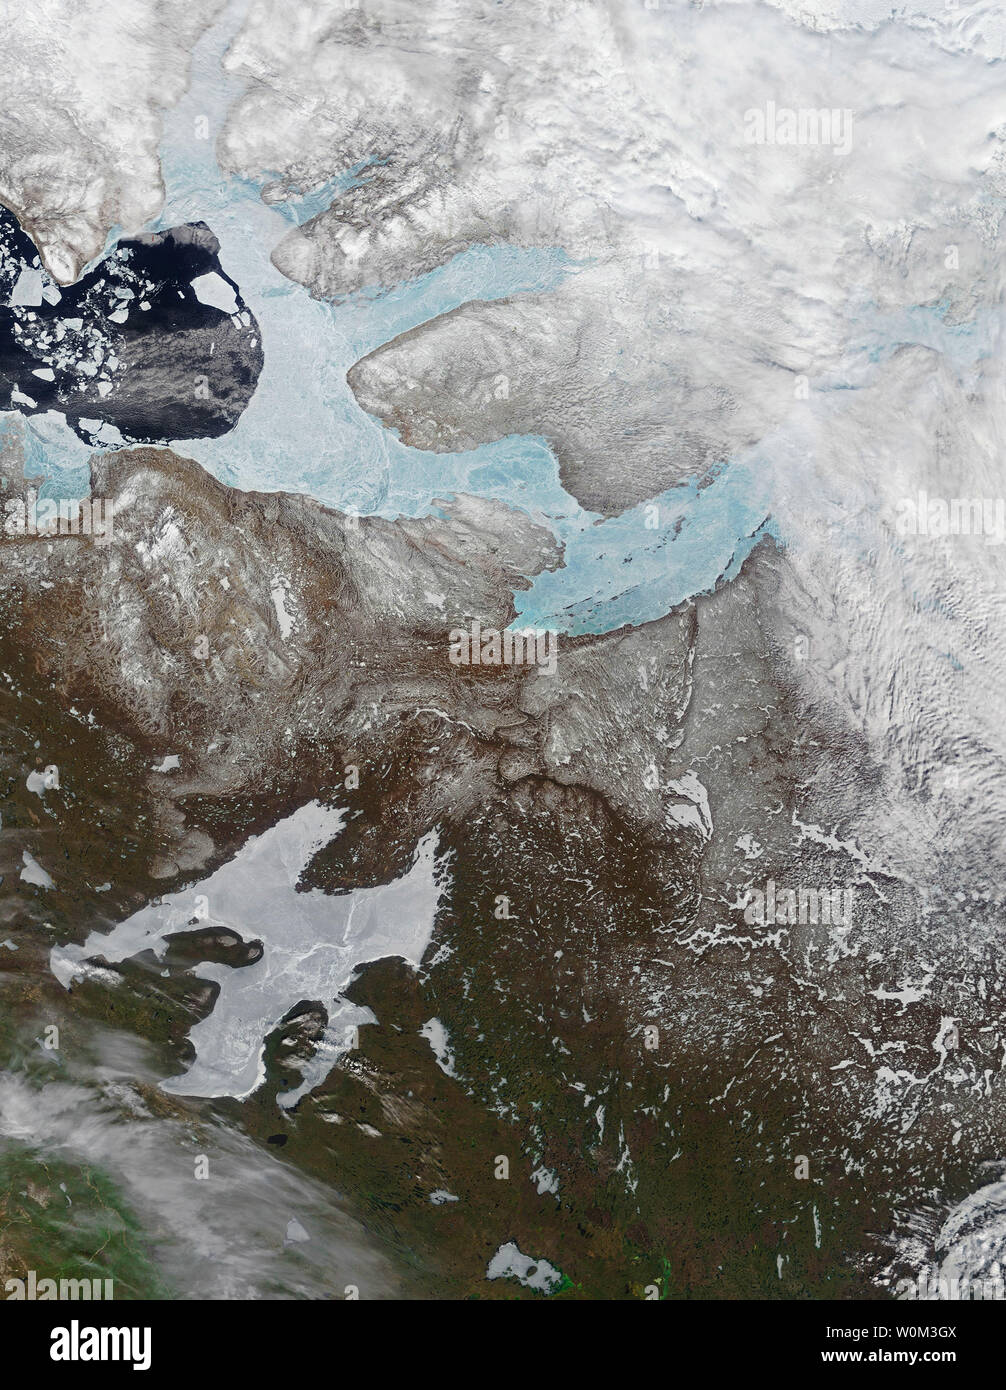 On May 29, 2017, the Moderate Resolution Imaging Spectroradiometer (MODIS) on NASA's Terra satellite captured this image of ice covering the Amundsen Gulf, Great Bear Lake, and numerous small lakes in the northern reaches of Canada's Northwest Territories and Nunavut. Sea ice generally forms in the Gulf of Amundsen in December or January and breaks up in June or July. Lake and river ice in this area follow roughly the same pattern, though shallow lakes freeze up earlier in the fall and melt earlier in the spring than larger, deeper lakes. NASA/UPI - Stock Image